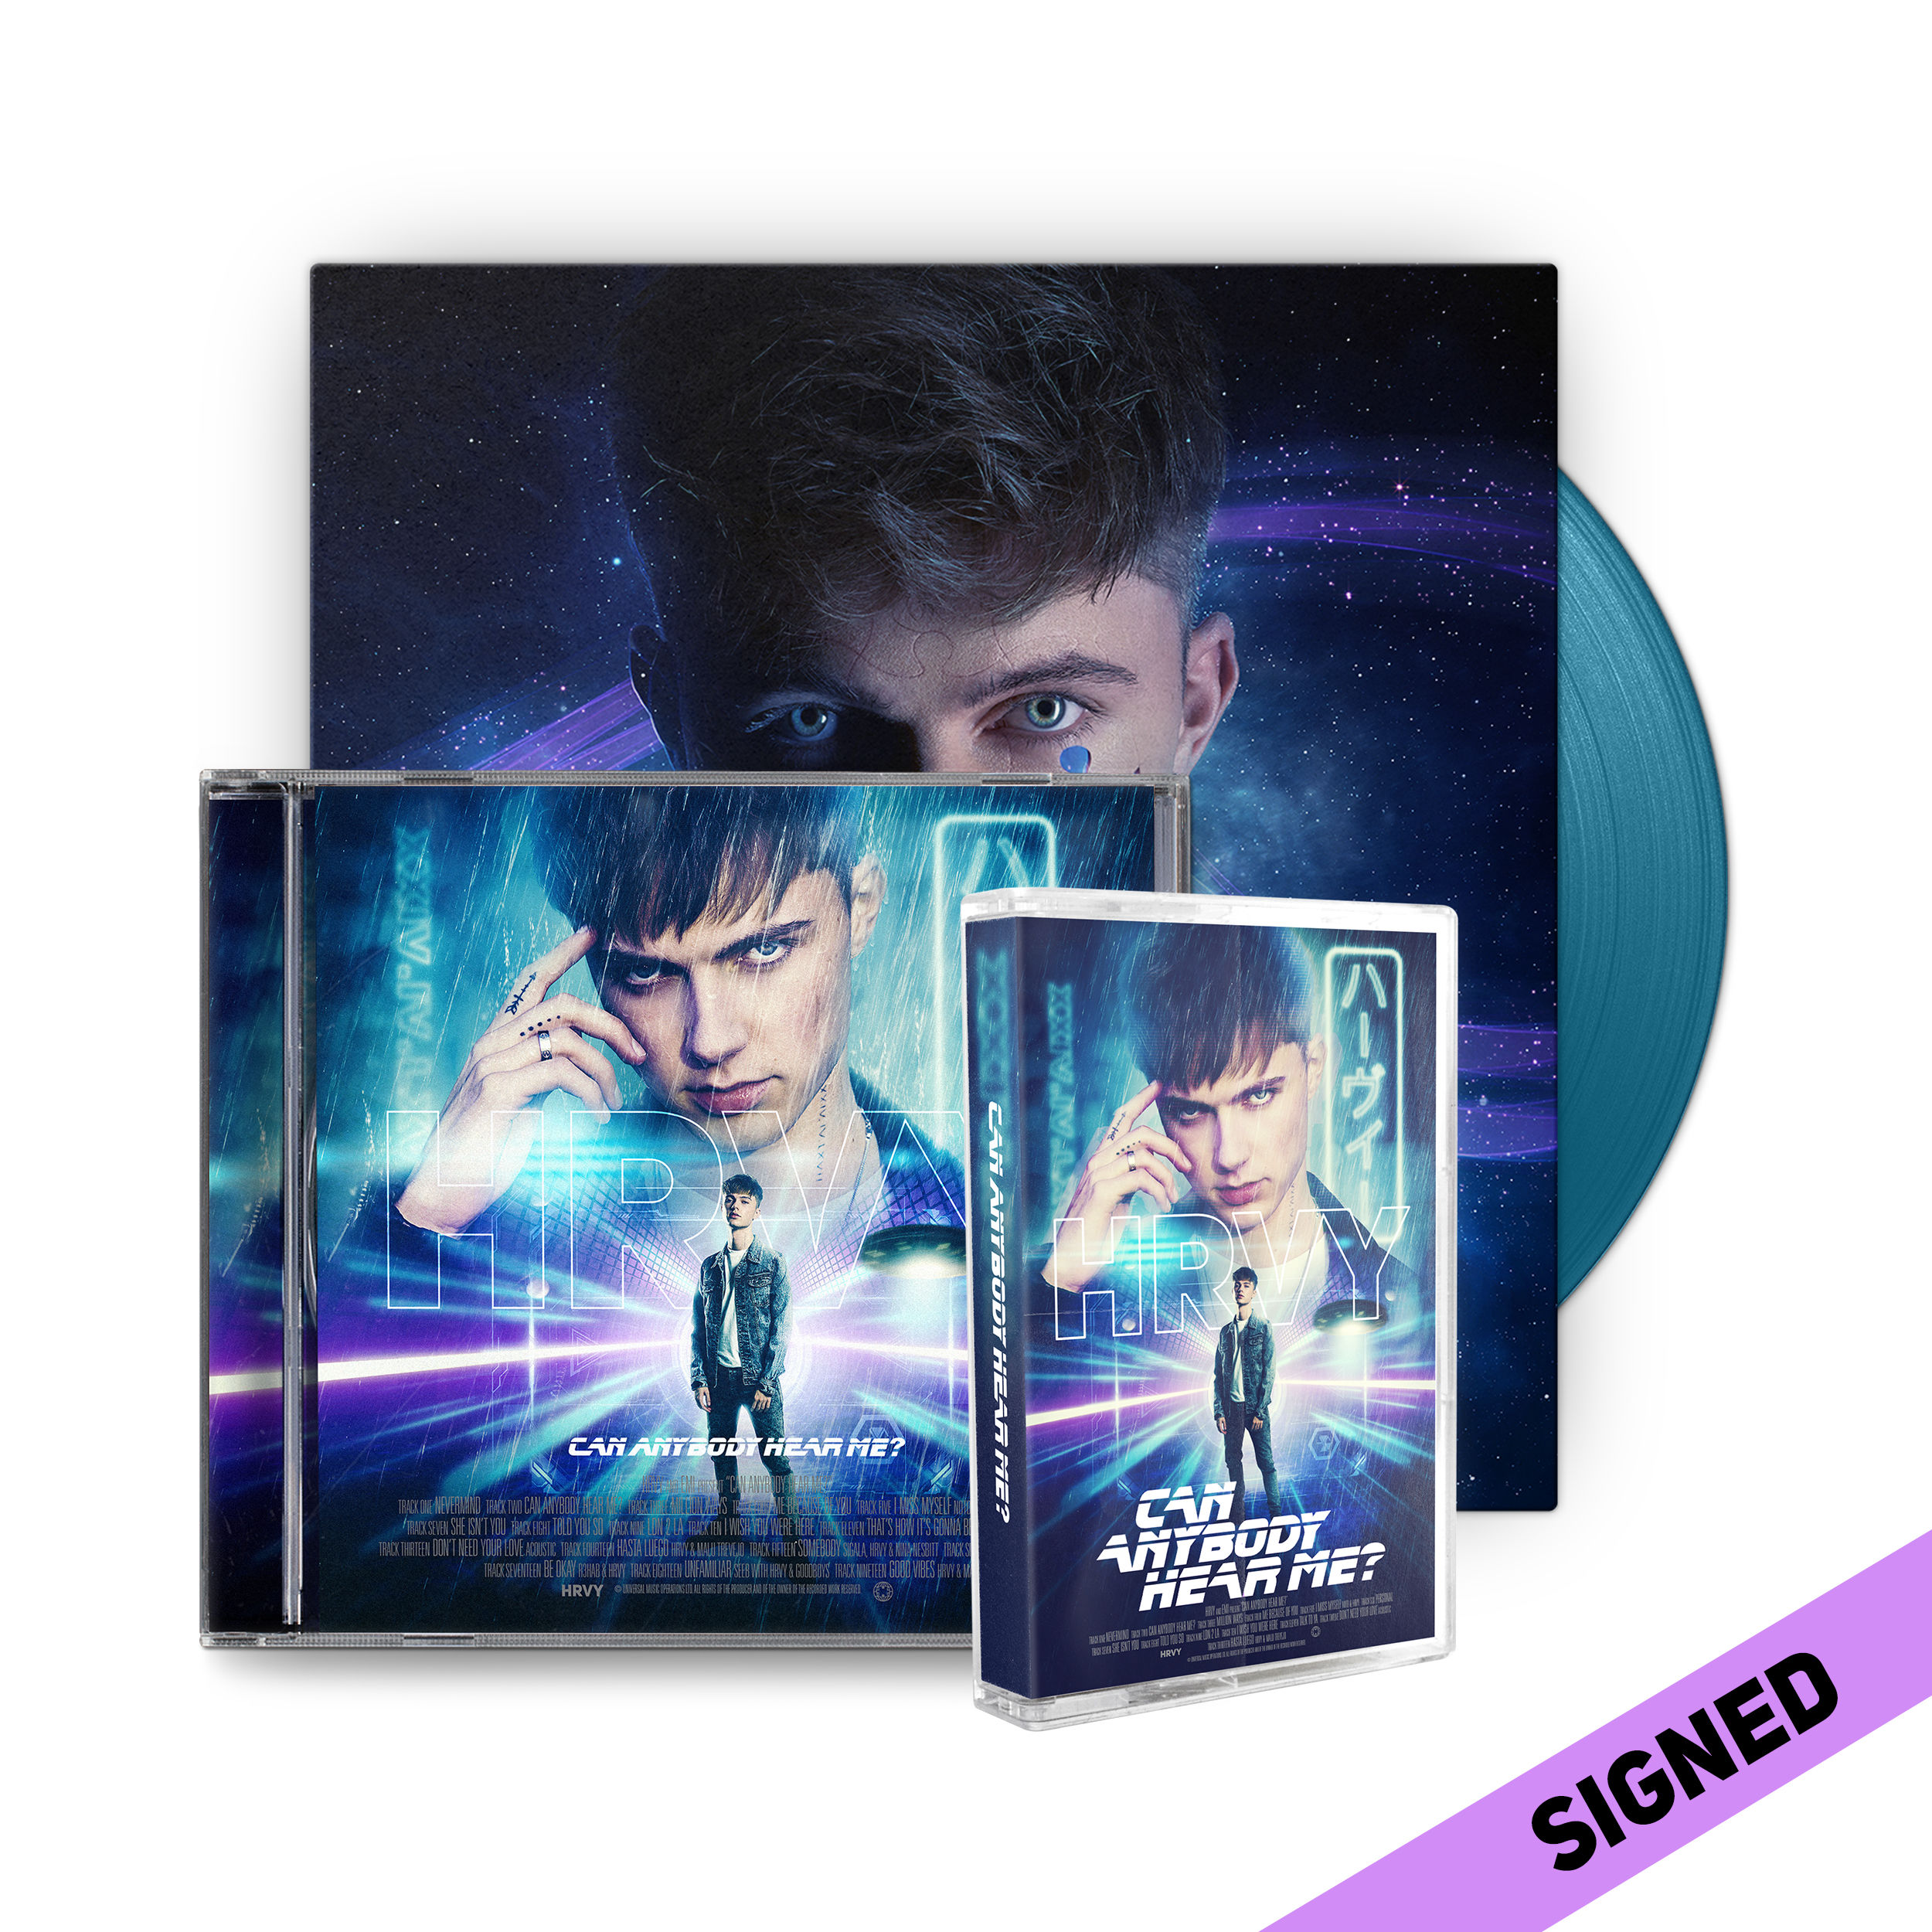 HRVY: Can Anybody Hear Me? Signed Deluxe CD & Cassette & Blue LP